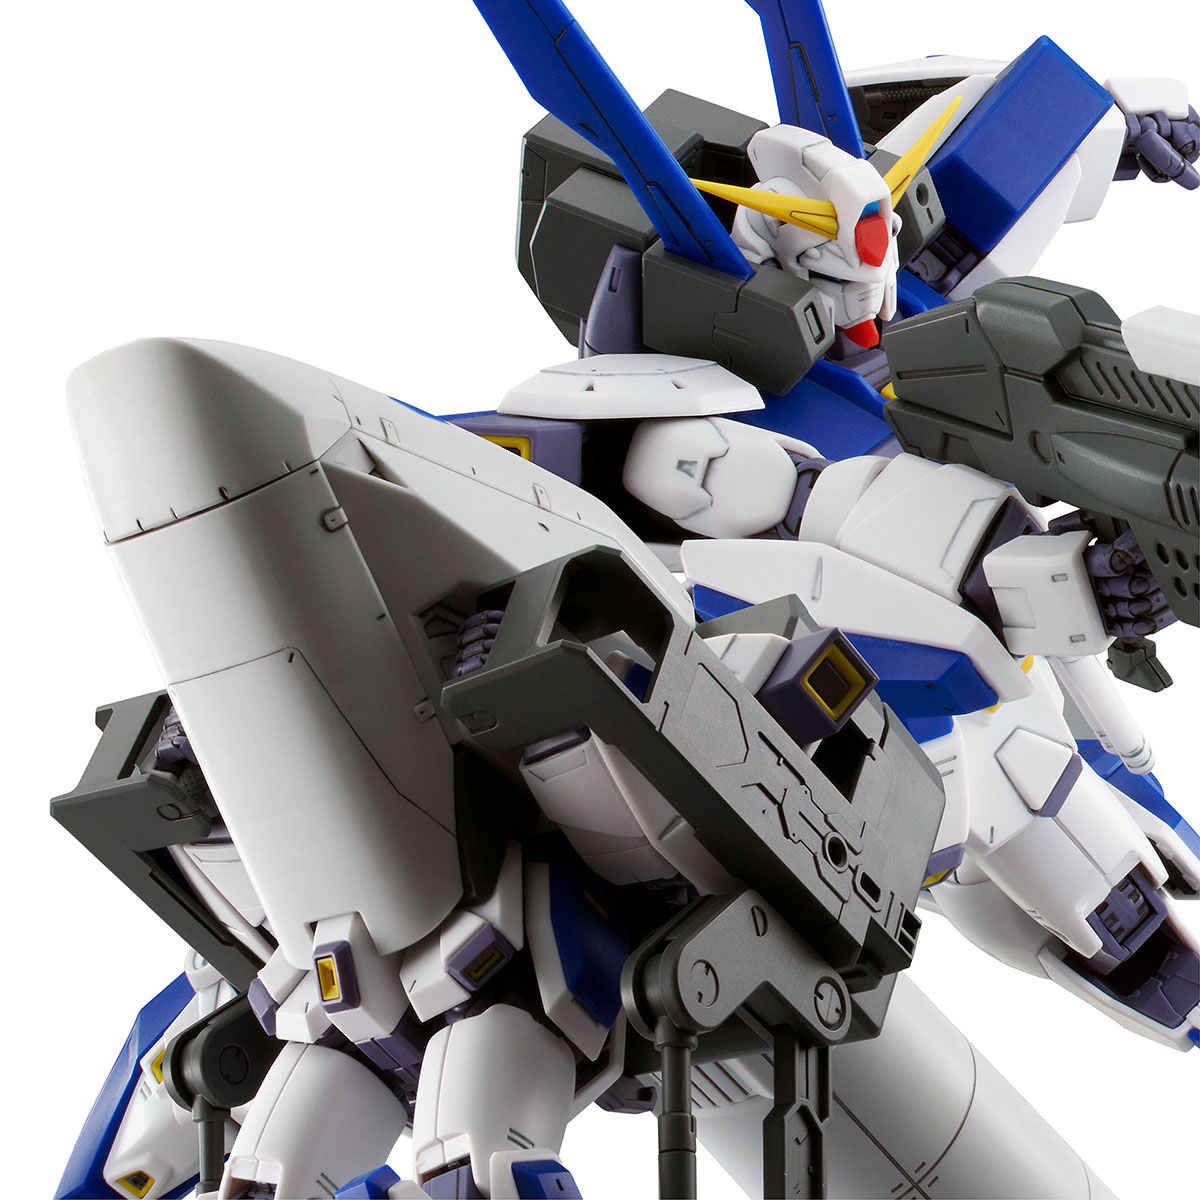 MG 1/100 MISSION PACK O-TYPE & U-TYPE for GUNDAM F90[Nov 2020 Delivery]